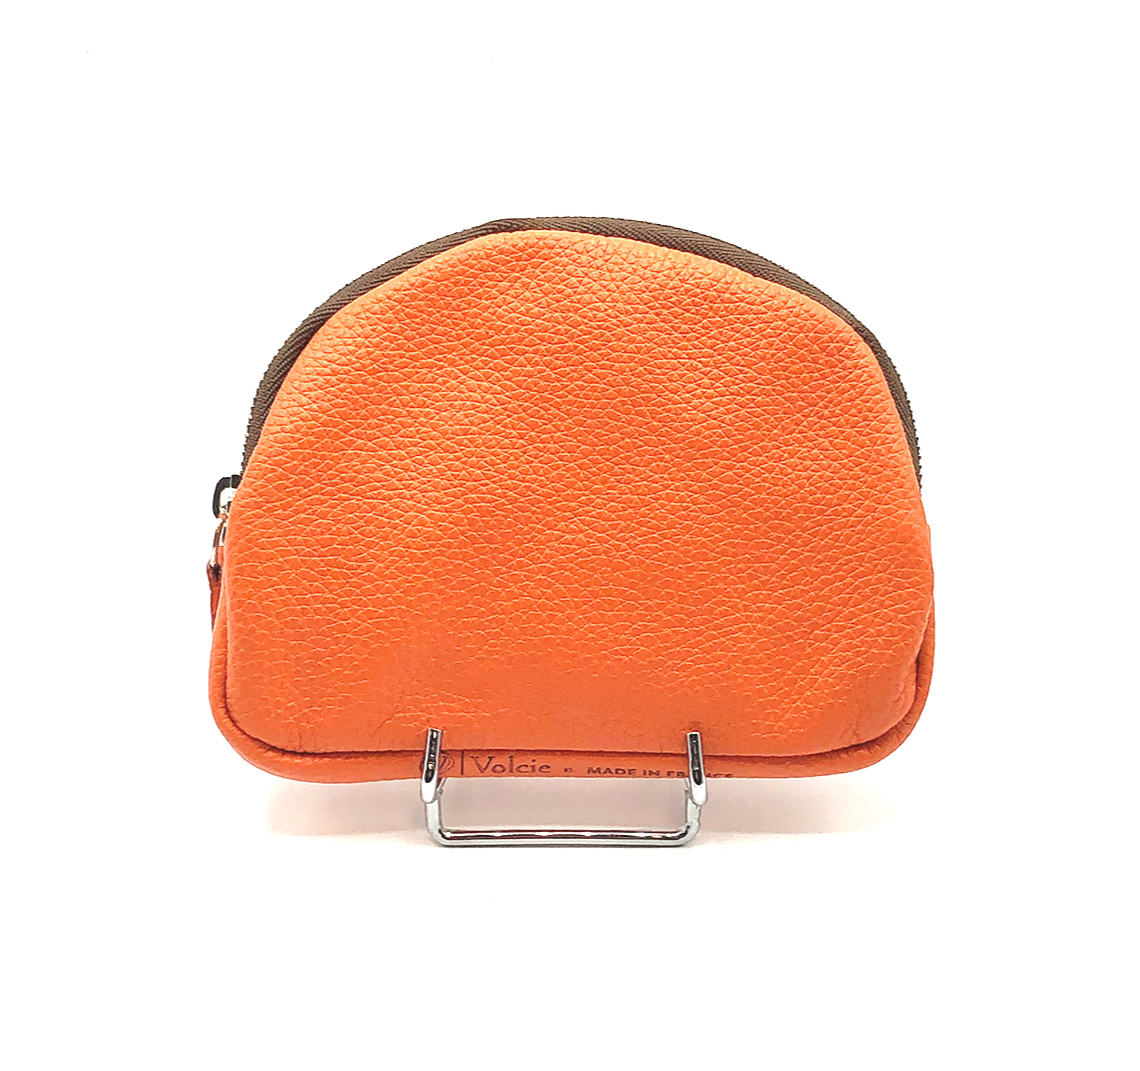 Porte monnaie Kate cuir grainé orange